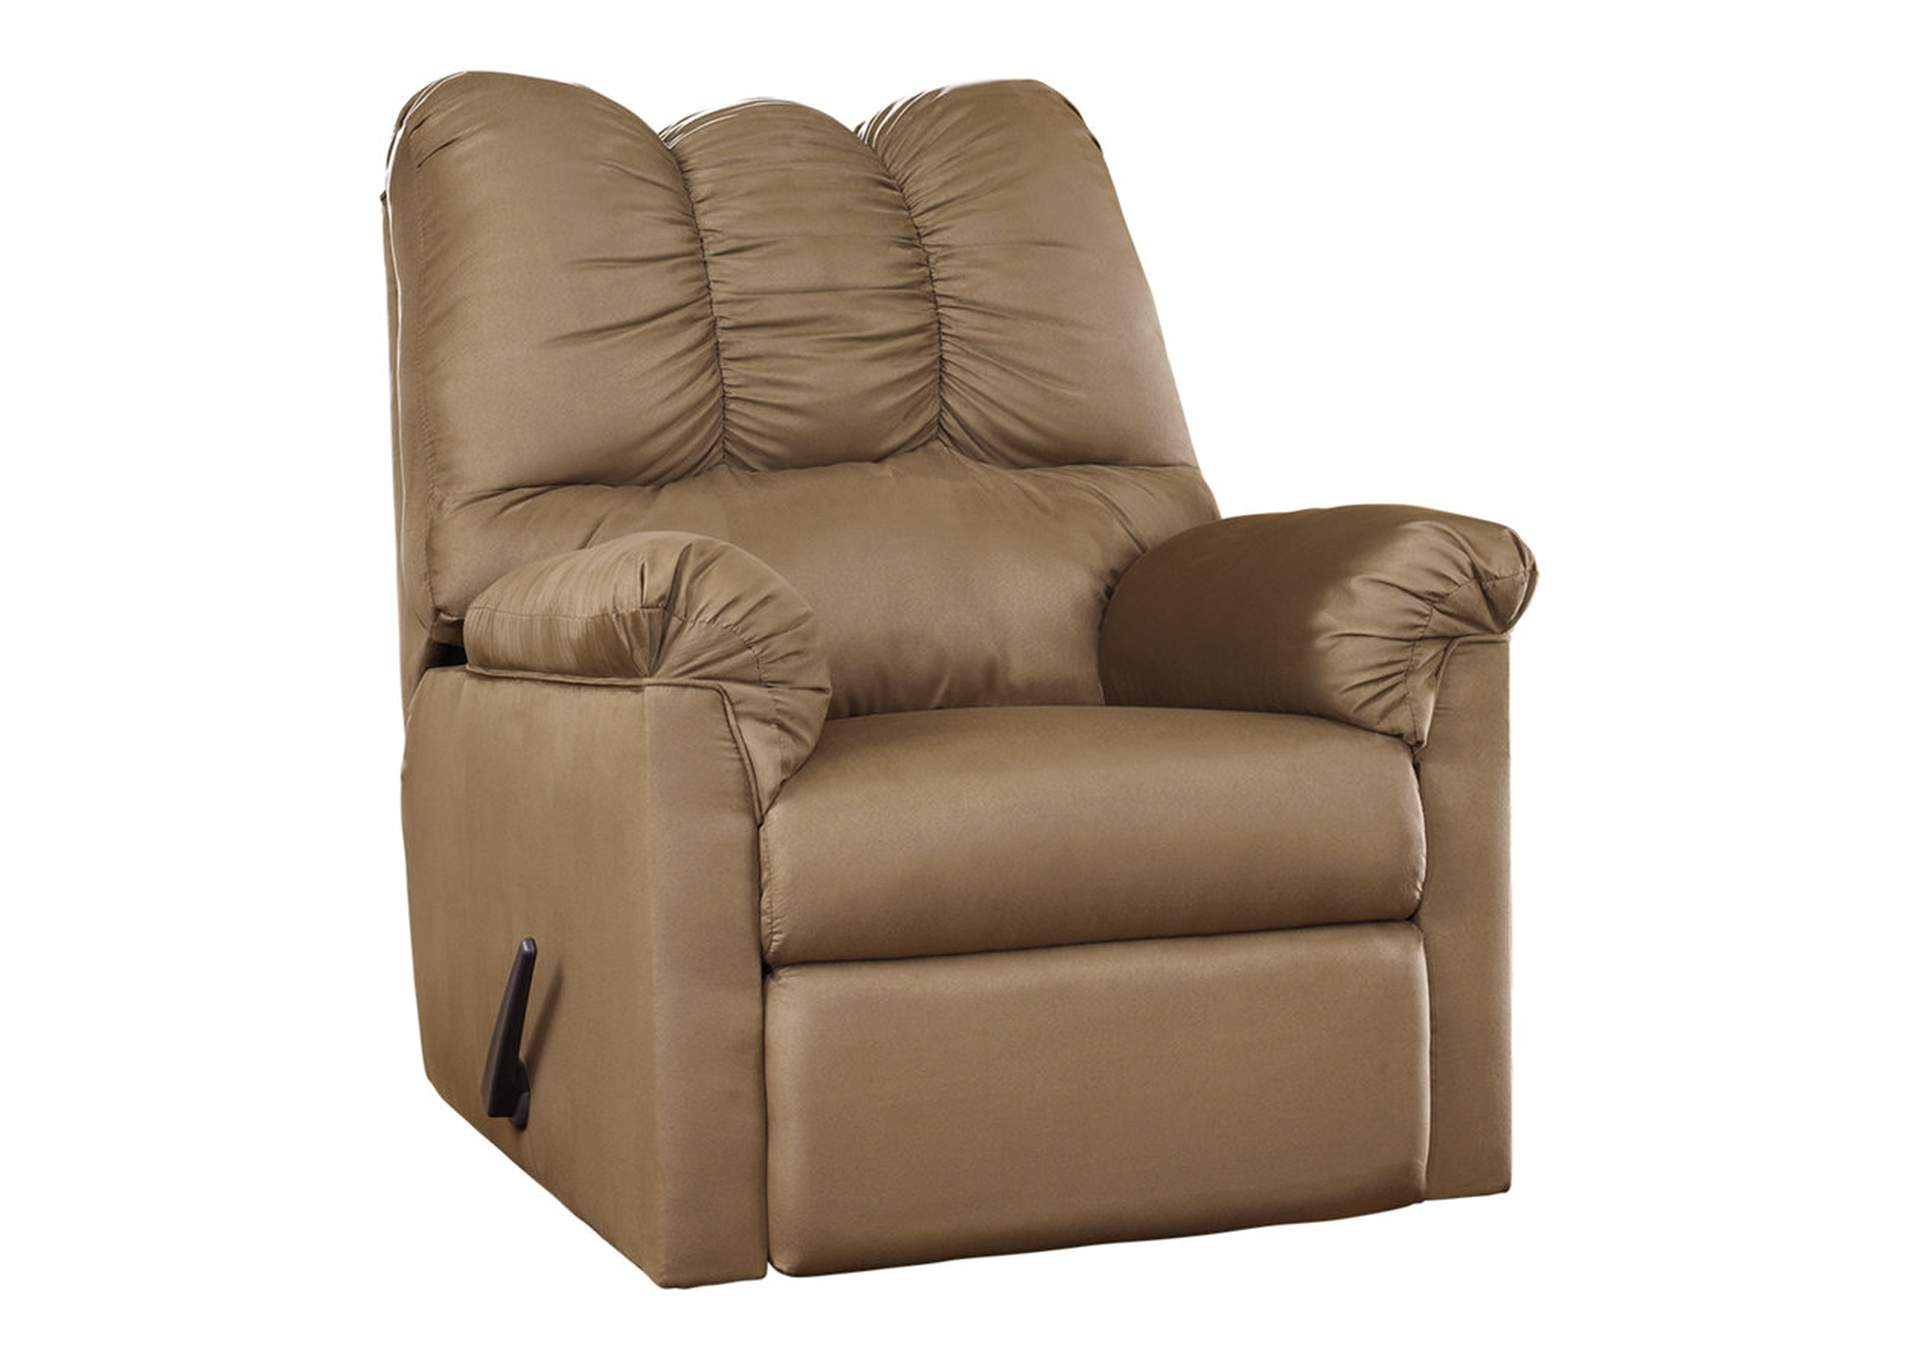 Darcy Mocha Rocker Recliner,Signature Design By Ashley